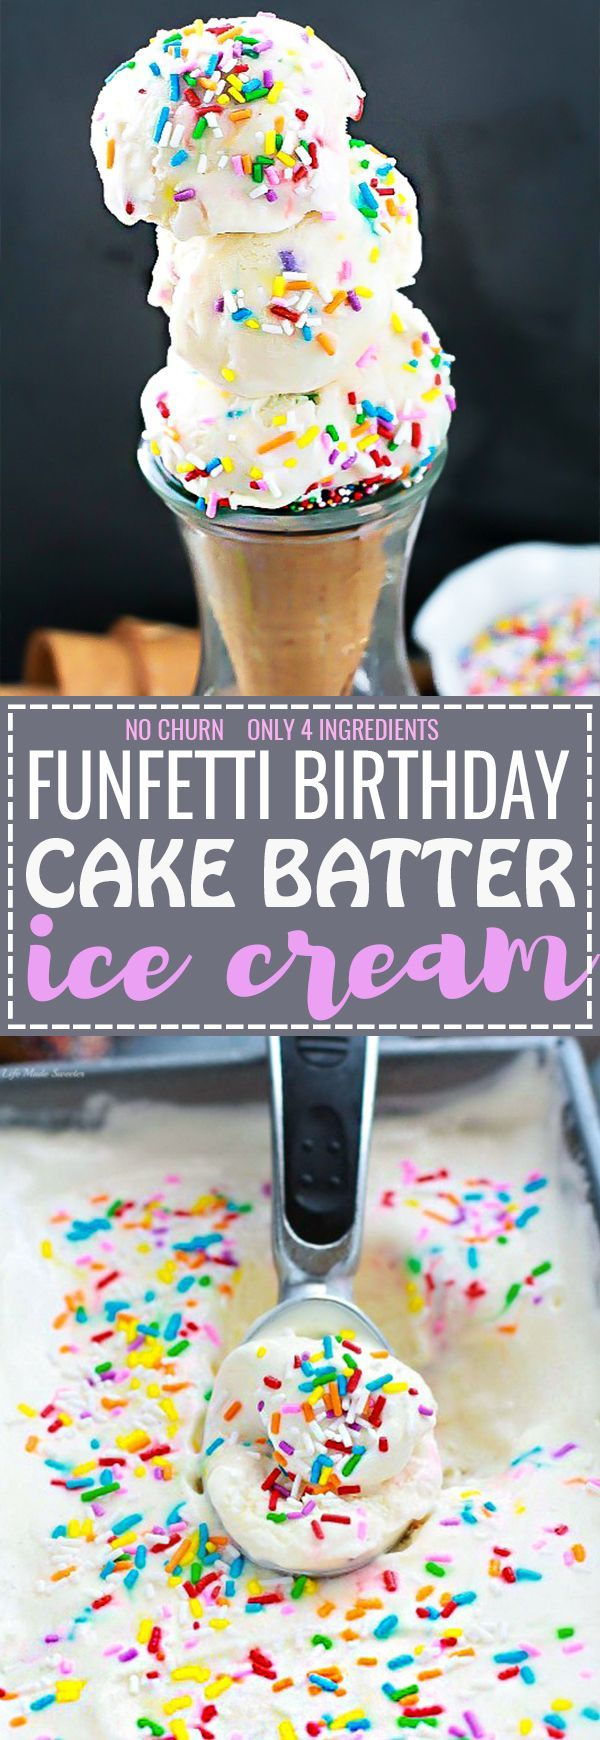 No-Churn Birthday Cake Batter Ice Cream {Funfetti} - the easiest & creamiest ice cream ever. With ONLY 4 ingredients and so simple to make. Best of all, NO ice cream maker and skip that stop to Cold Stone Creamery! The perfect summer treat for a birthday or any other occasion!